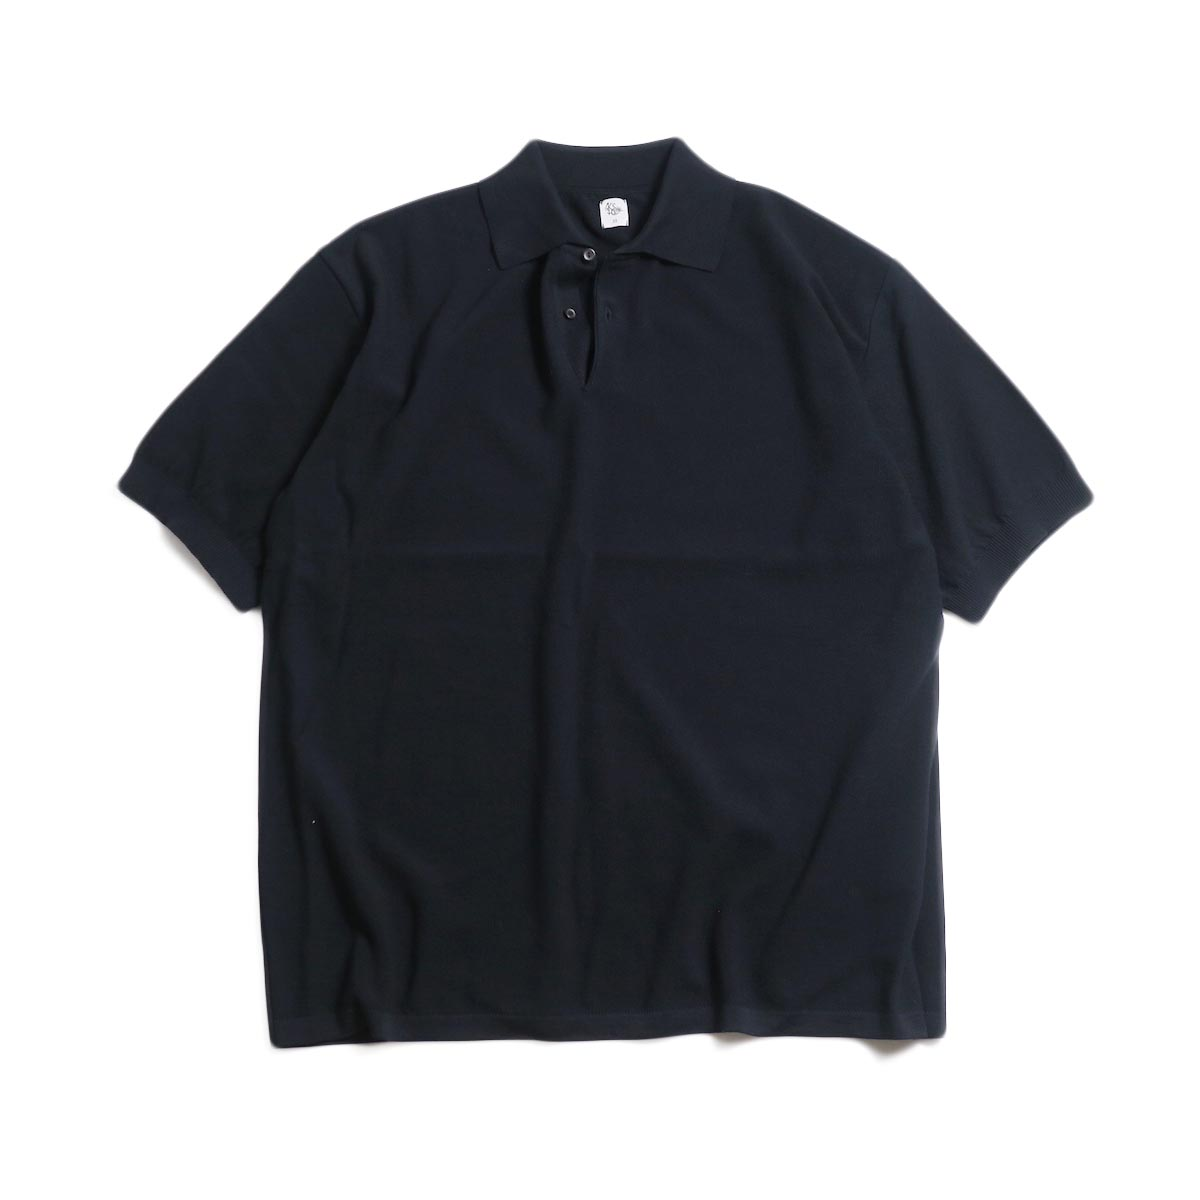 Kaptain Sunshine / Polo Collar Knit Shirt -Black Solid